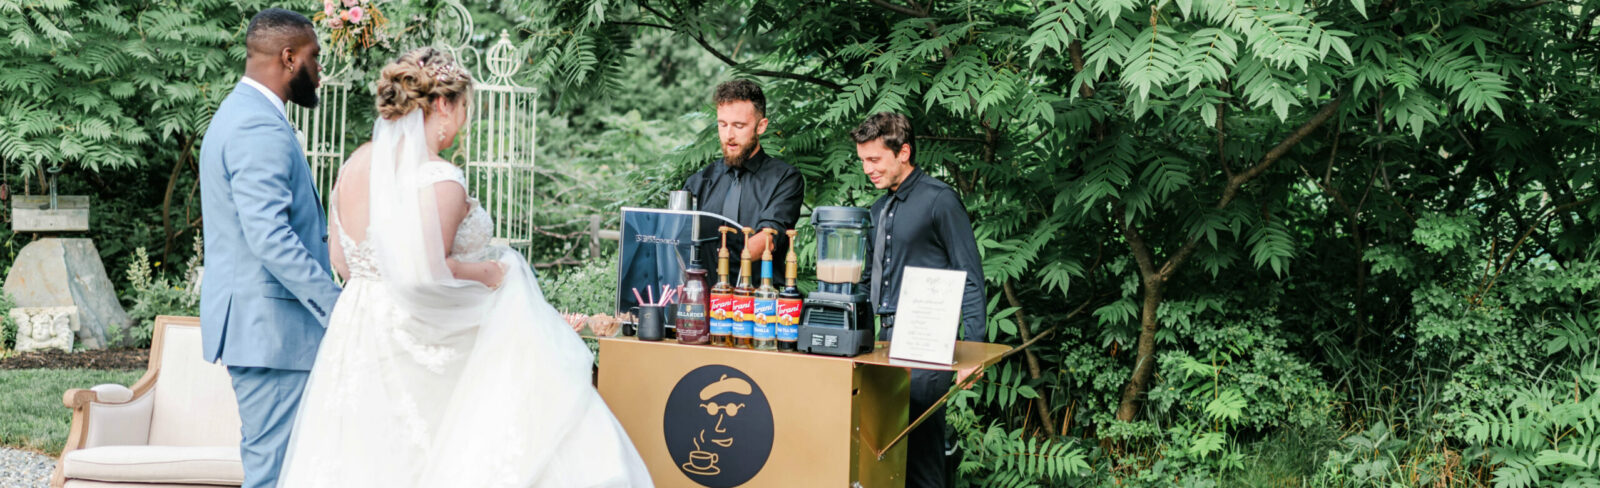 Boston's Espresso Dave Coffee Catering perfect for microweddings & minimonies. PC: Rachel Campbell Photography